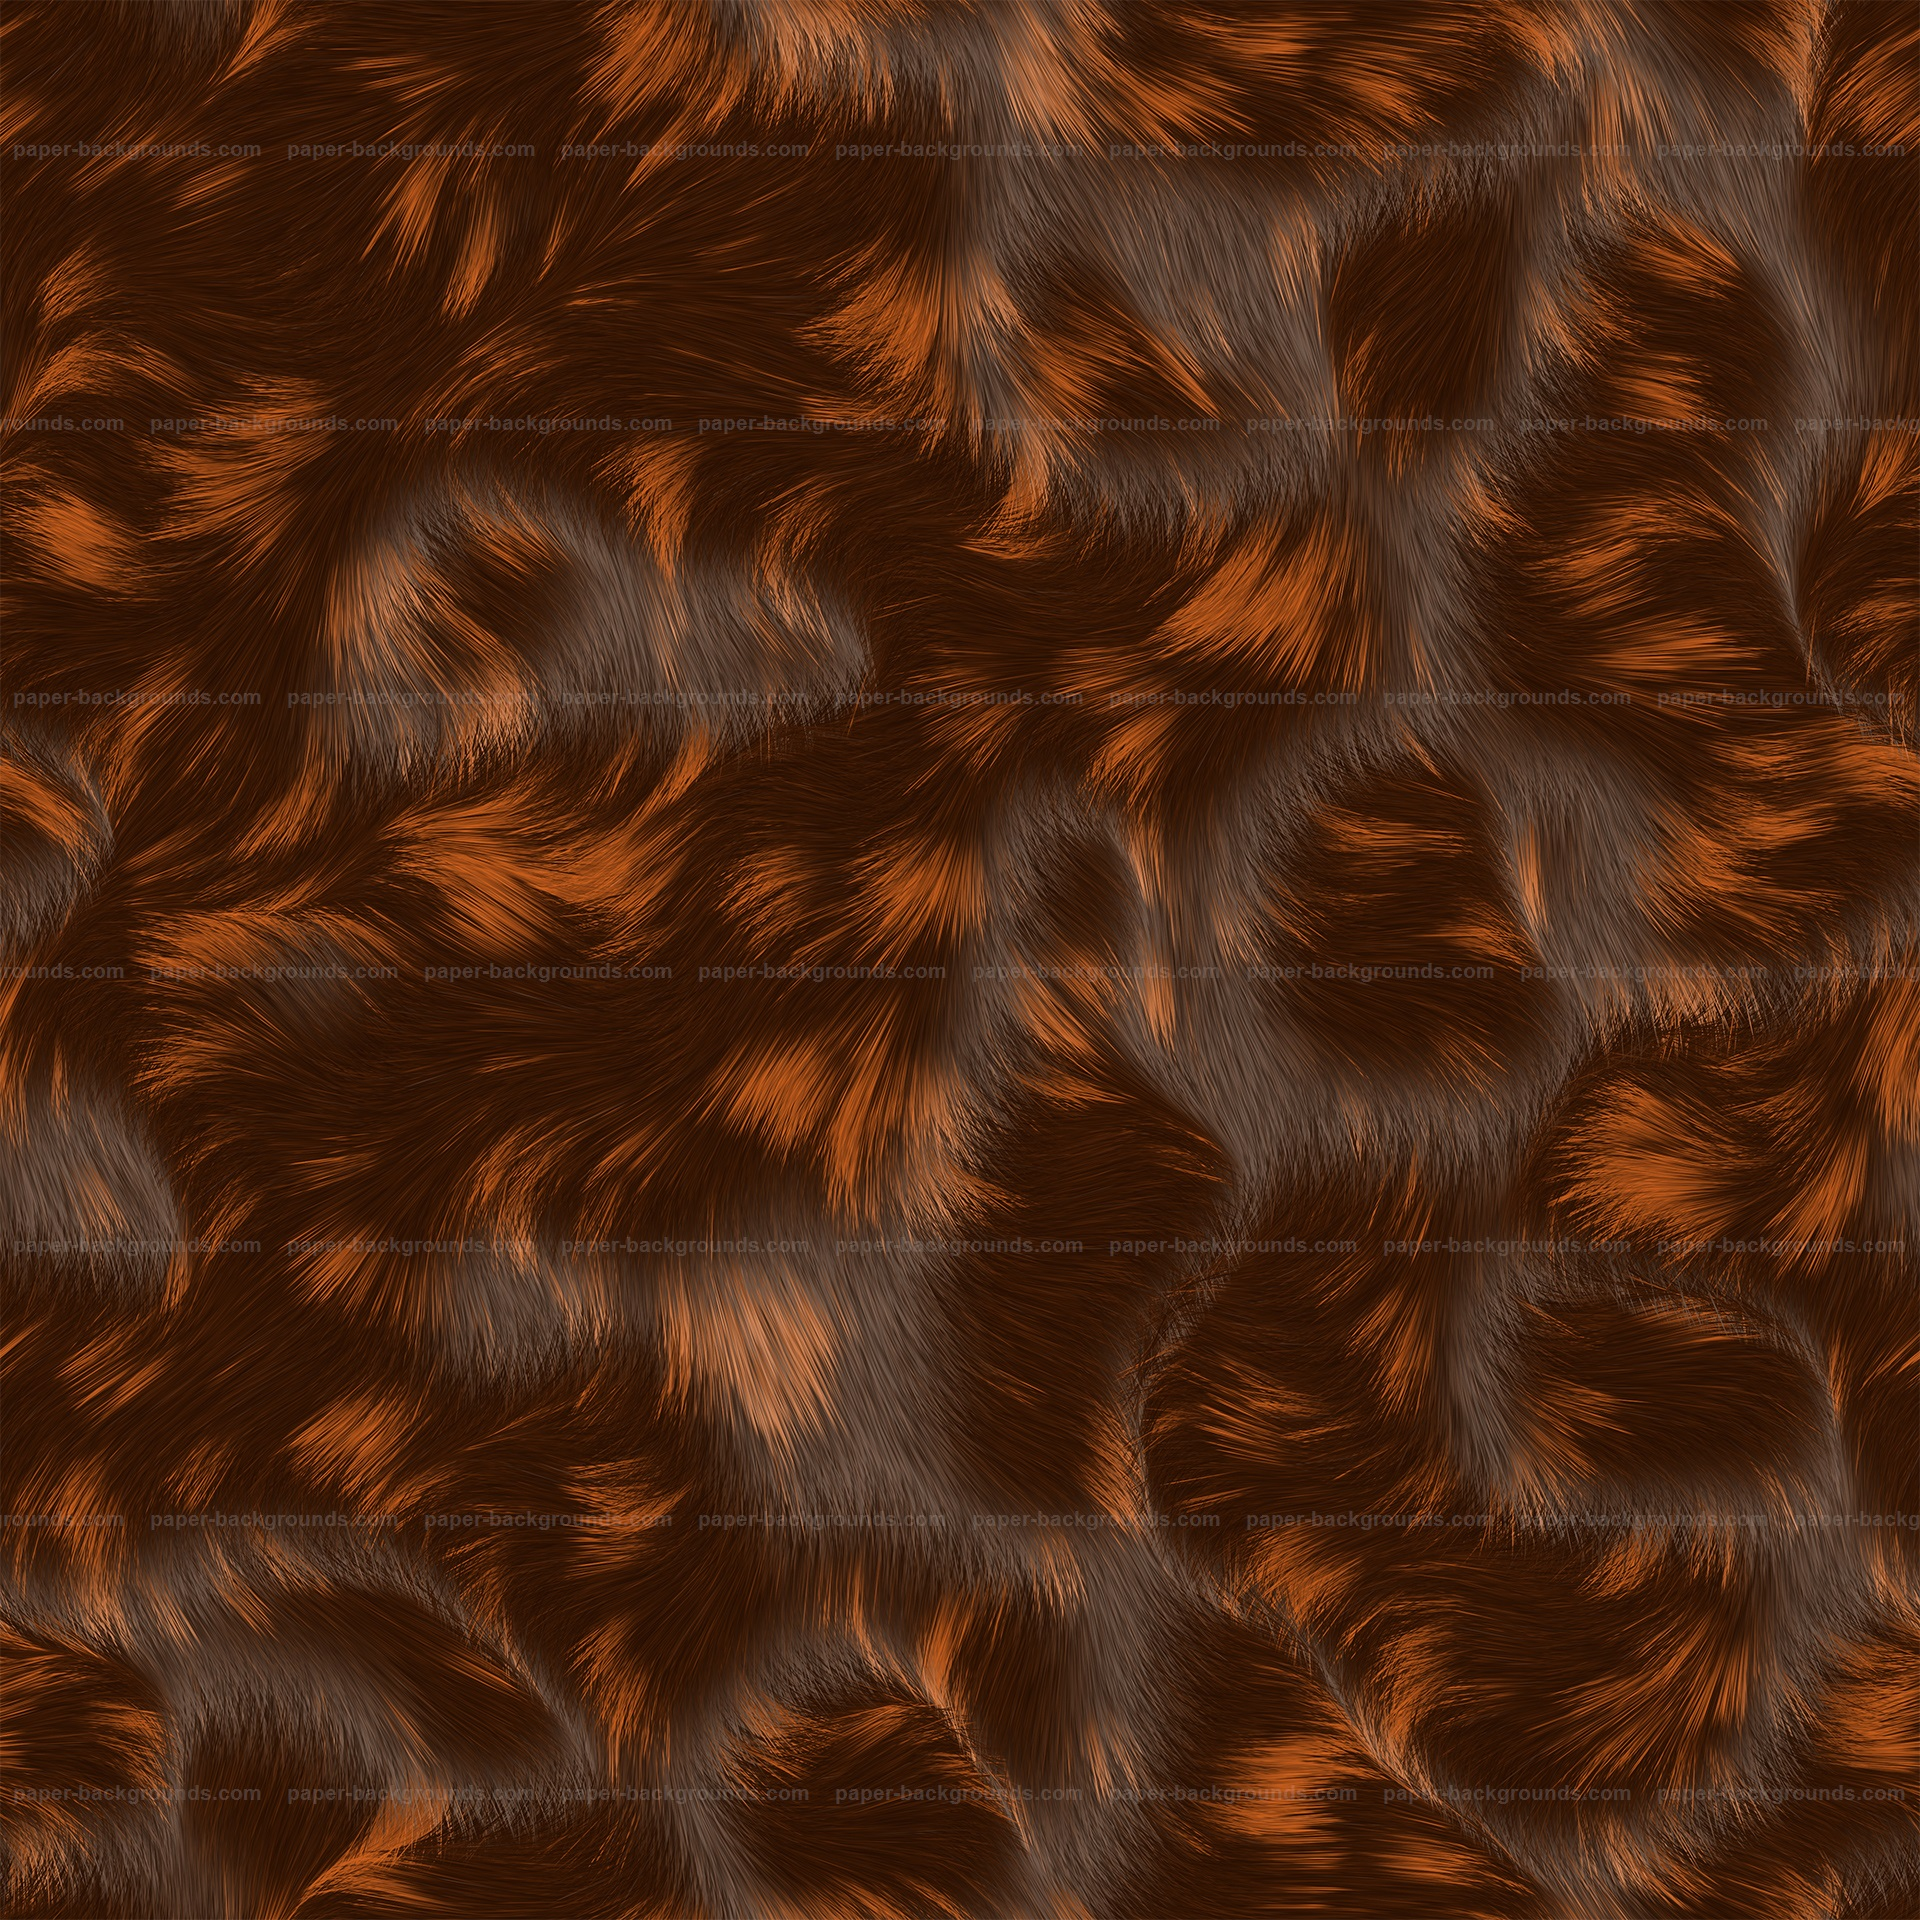 Bed sheets texture seamless - Seamless Brown Animal For Bed Head Texture Hd